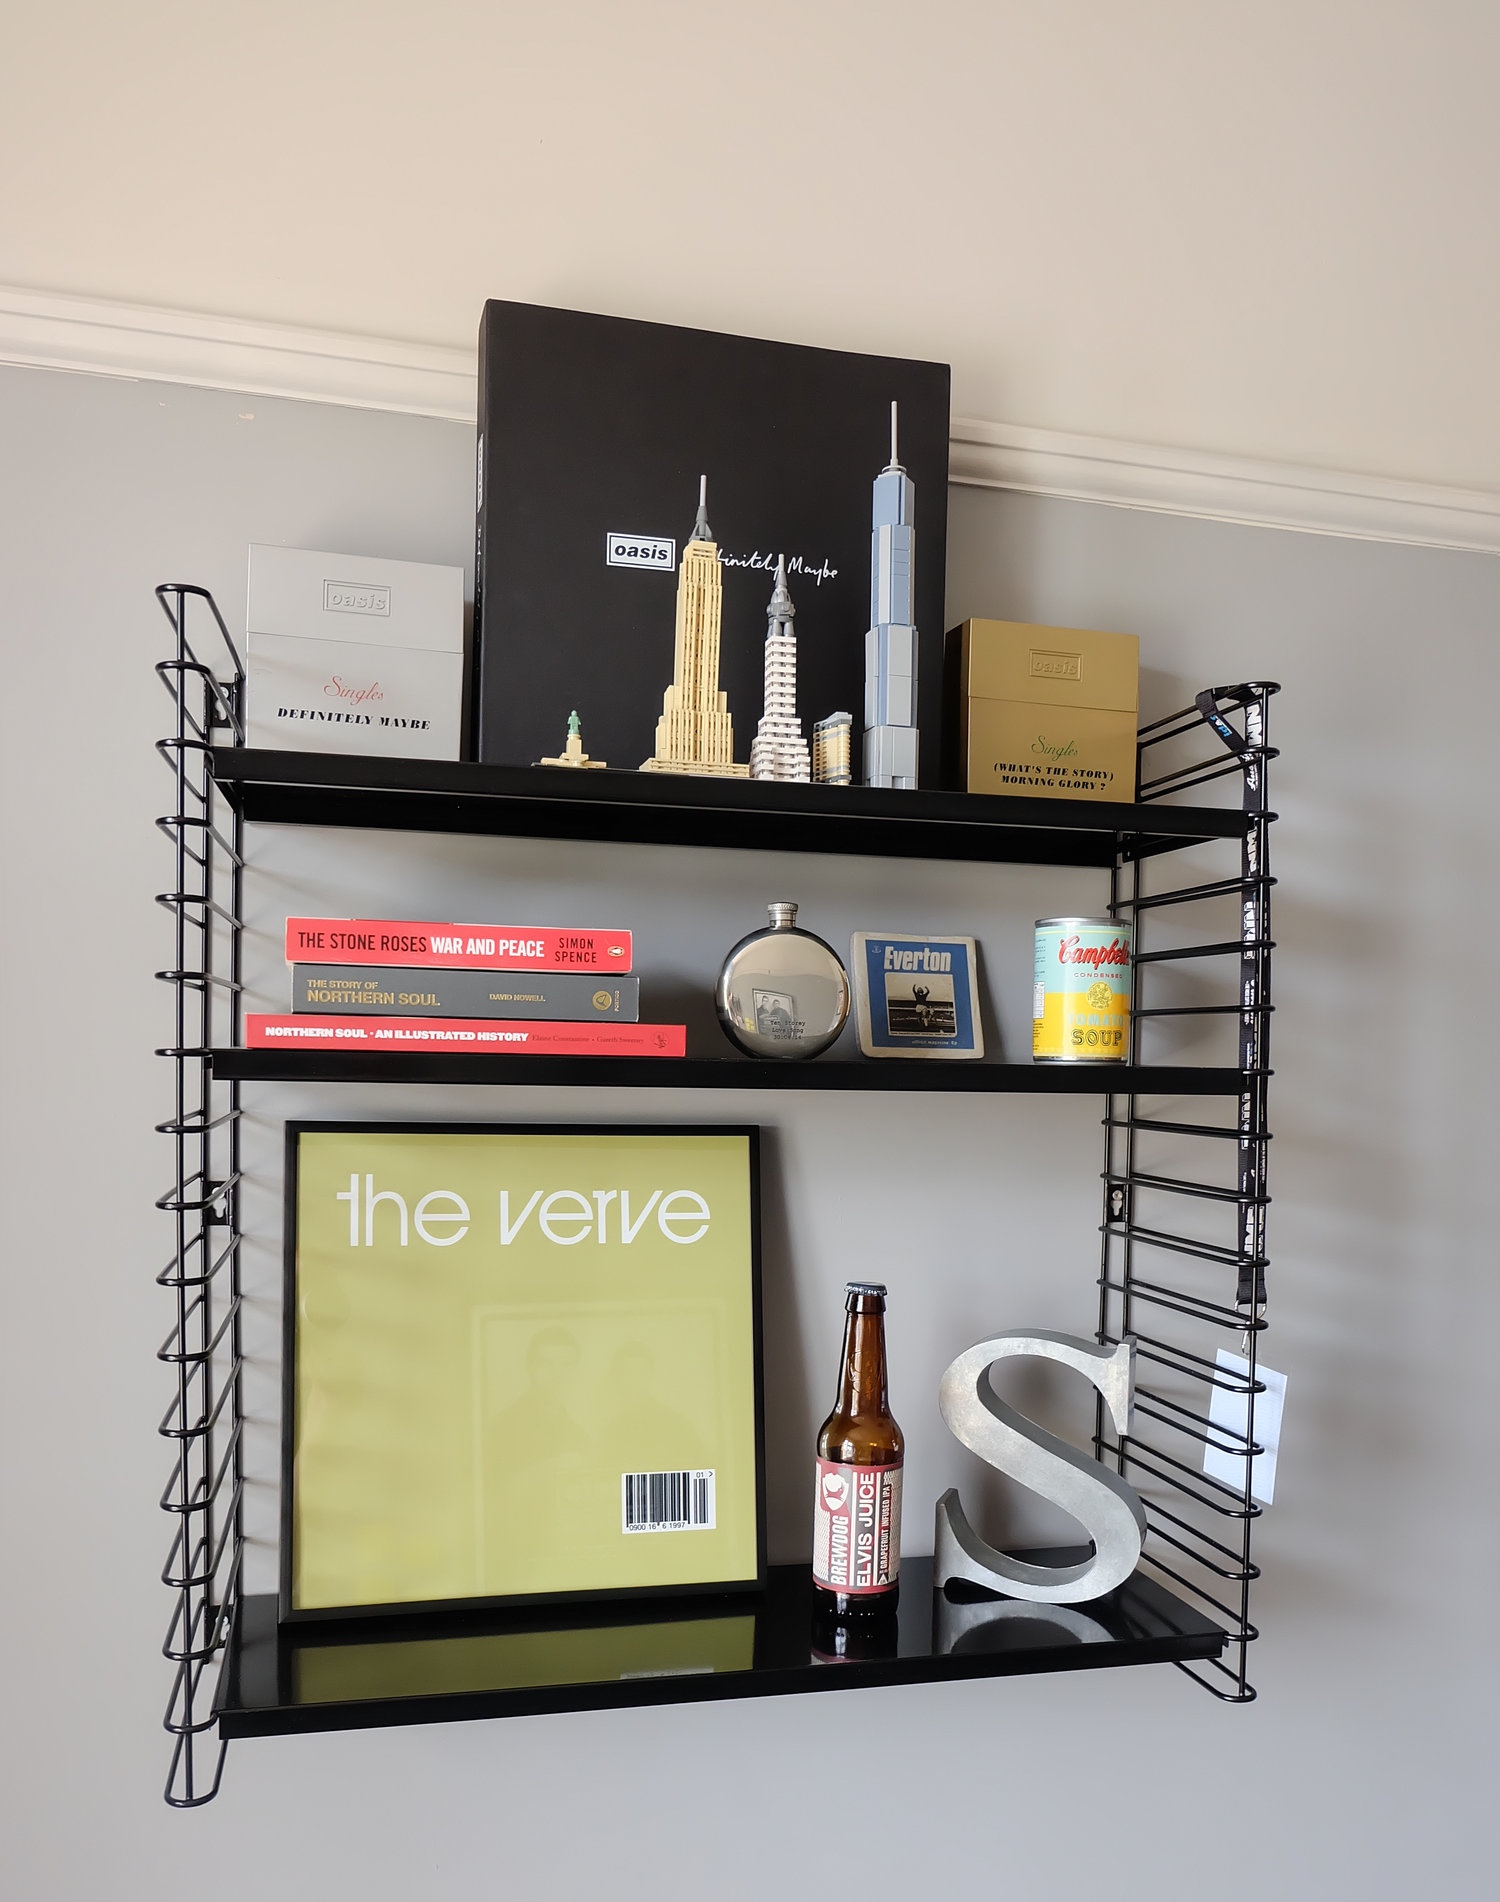 Retro style string shelves